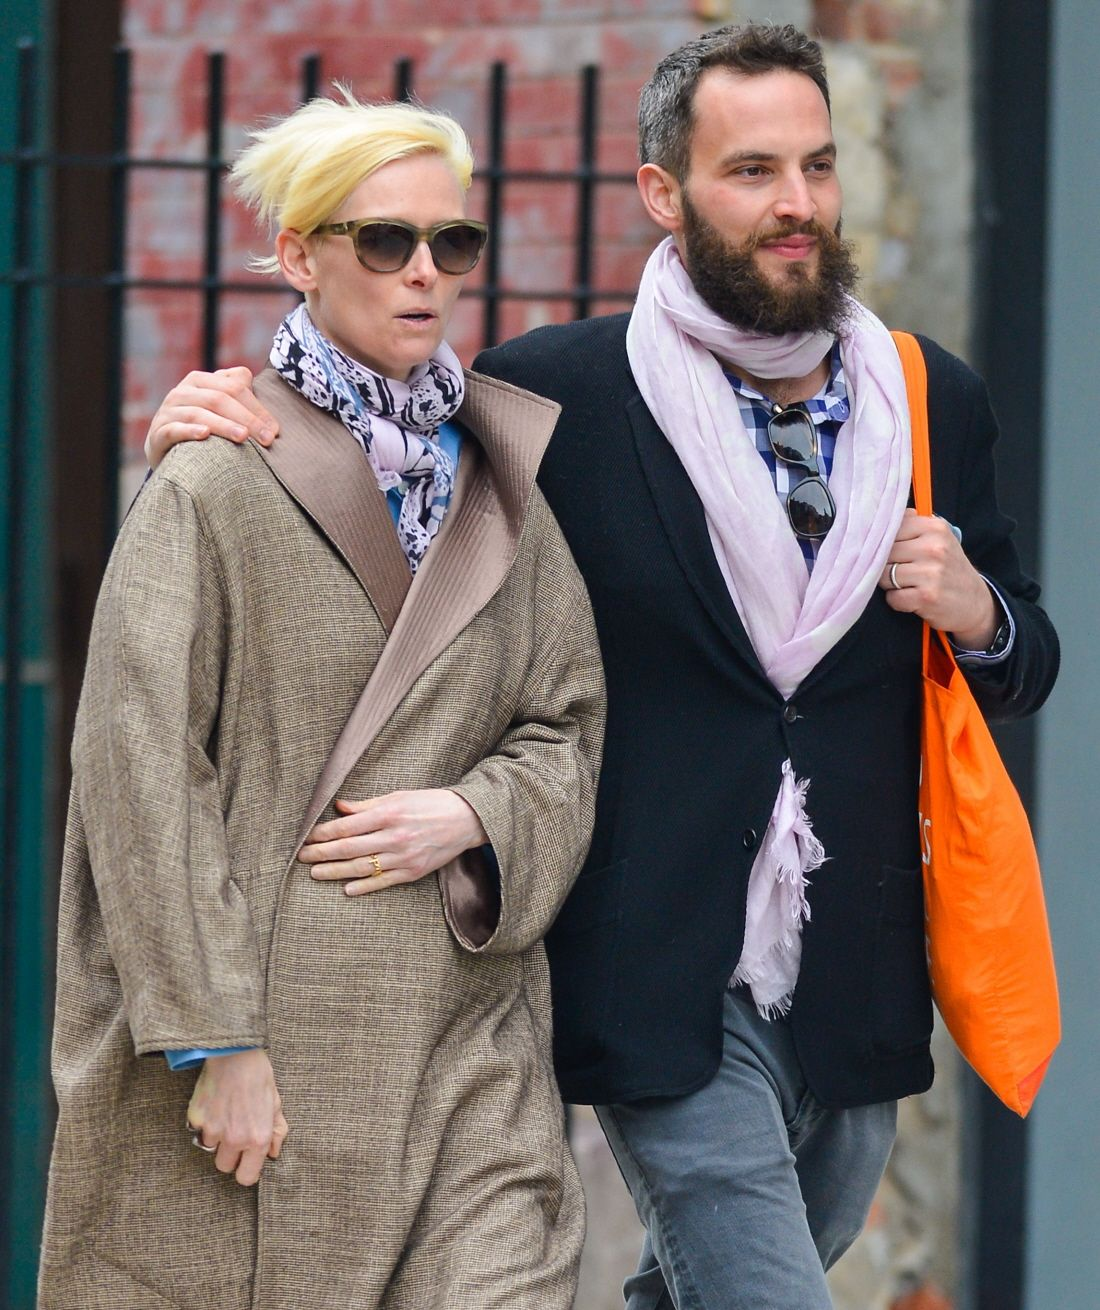 Tilda And Her Boyfriend Of Several Years Sandro Kopp Out And About In Nyc Tilda Swinton Sandro How To Look Better